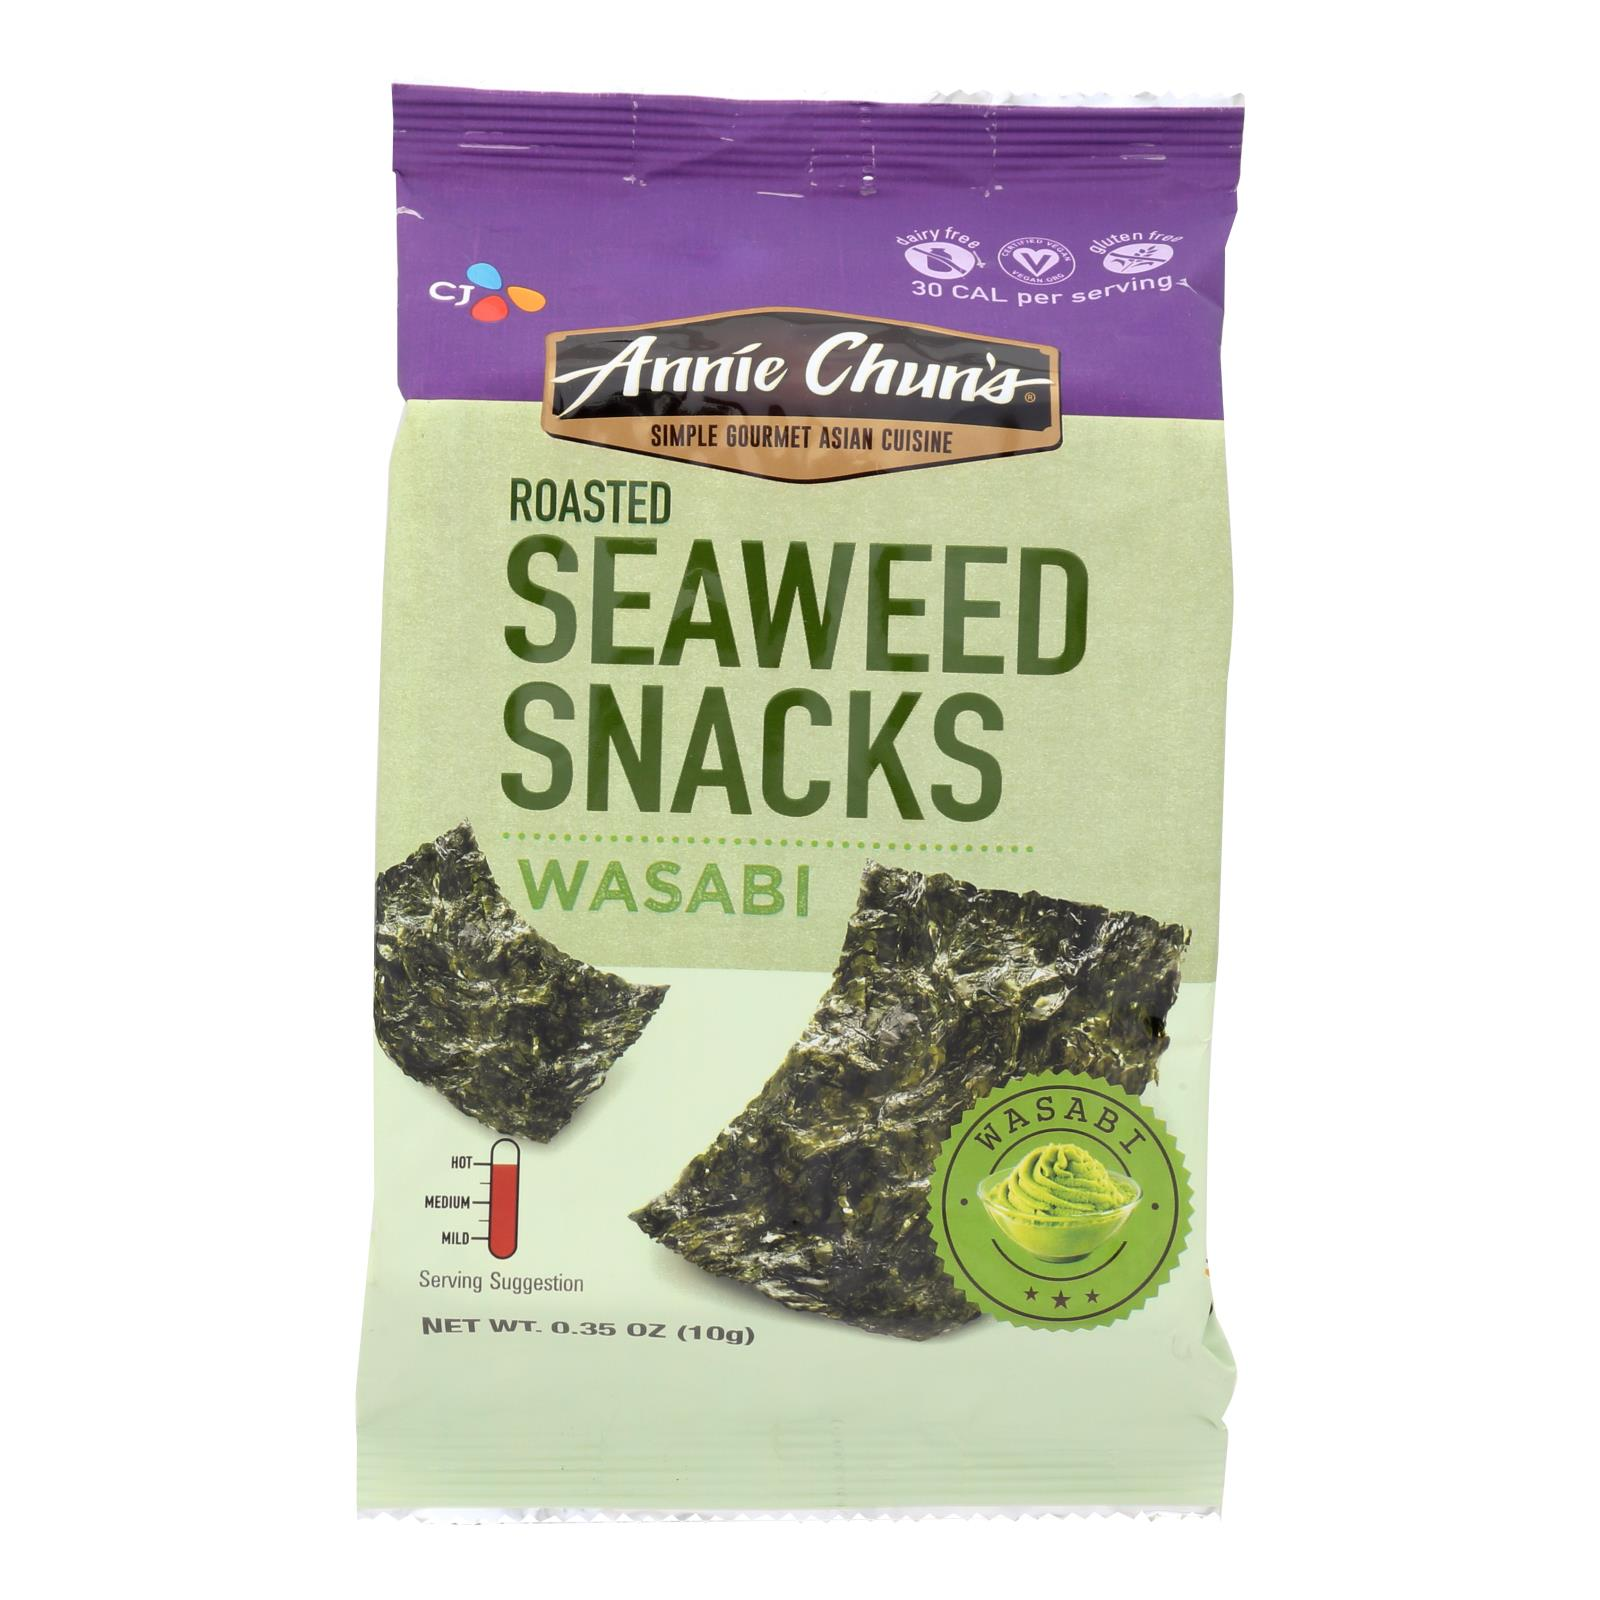 Details about Annie Chun's Seaweed Snacks Roasted Wasabi - Case Of 12 -  0 35 Oz